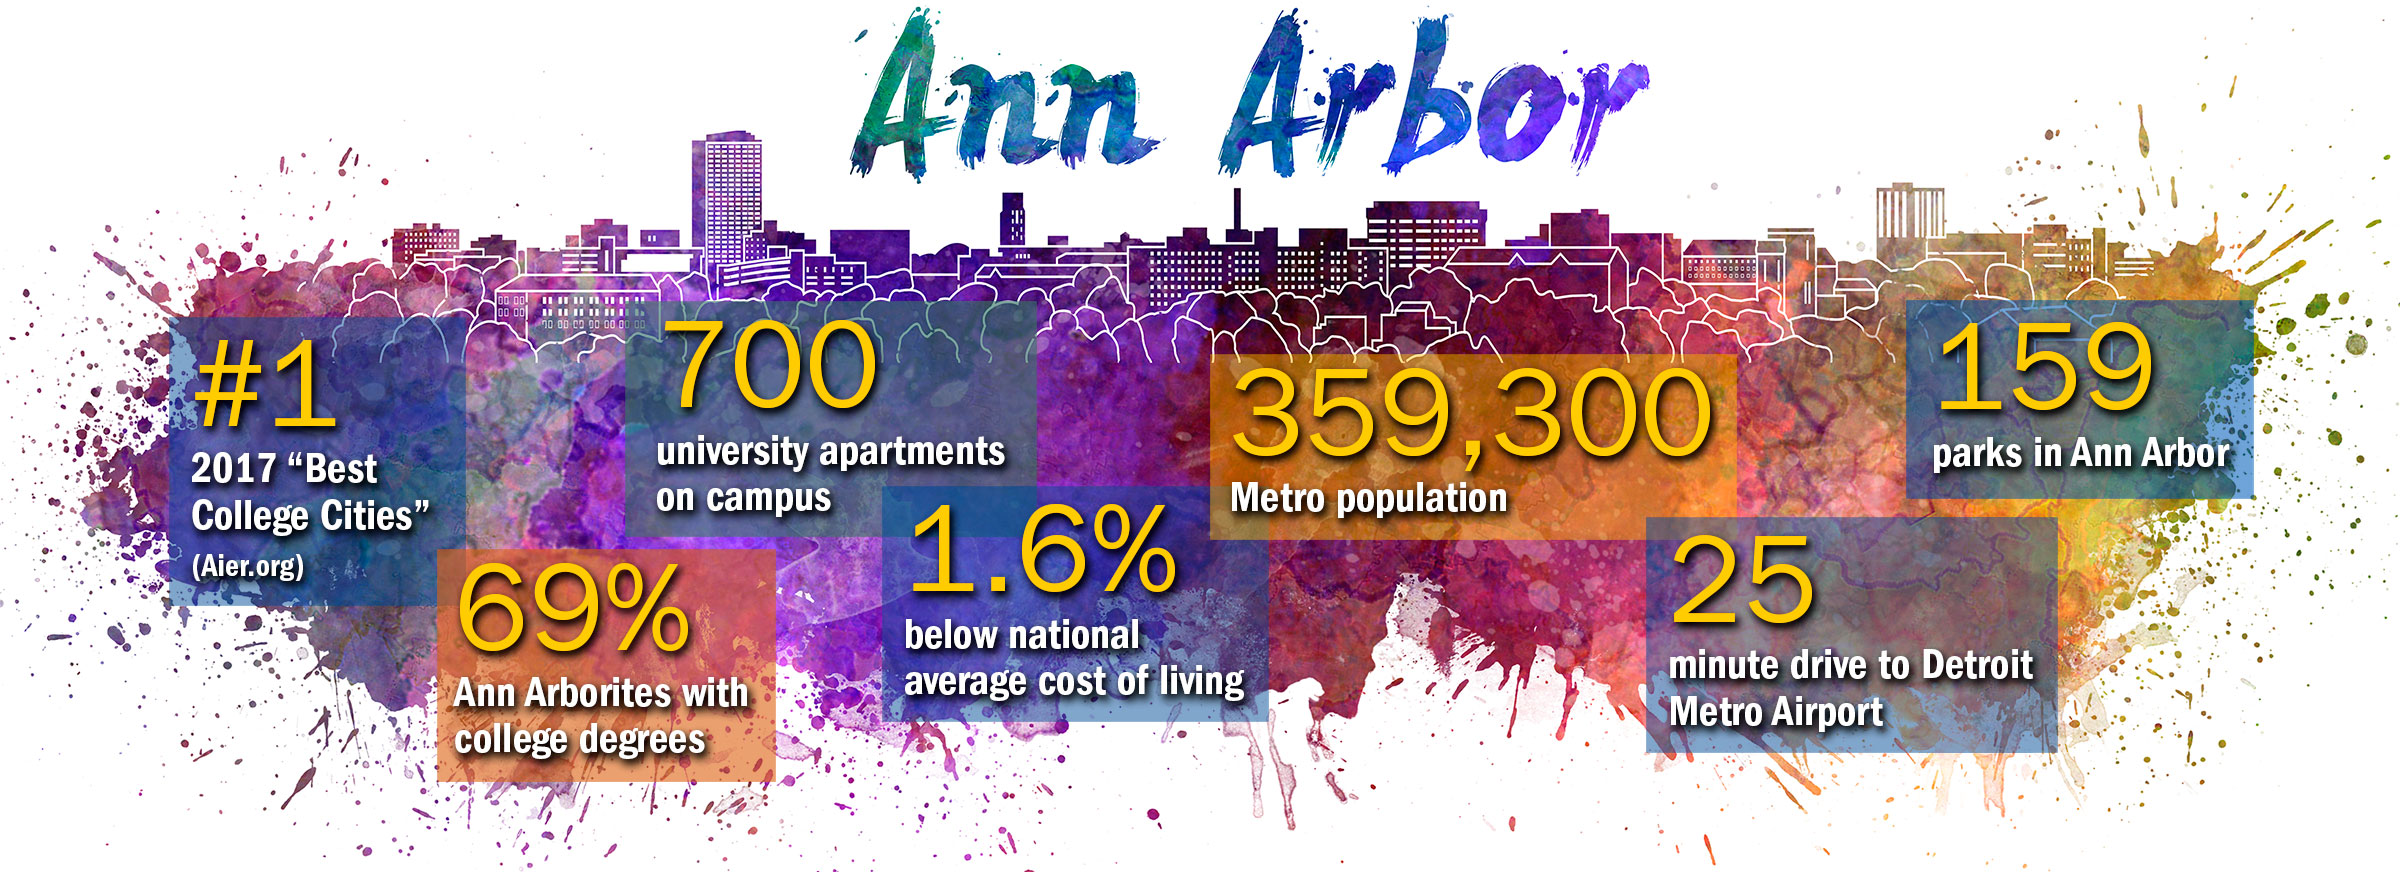 Ann Arbor rankings infographic